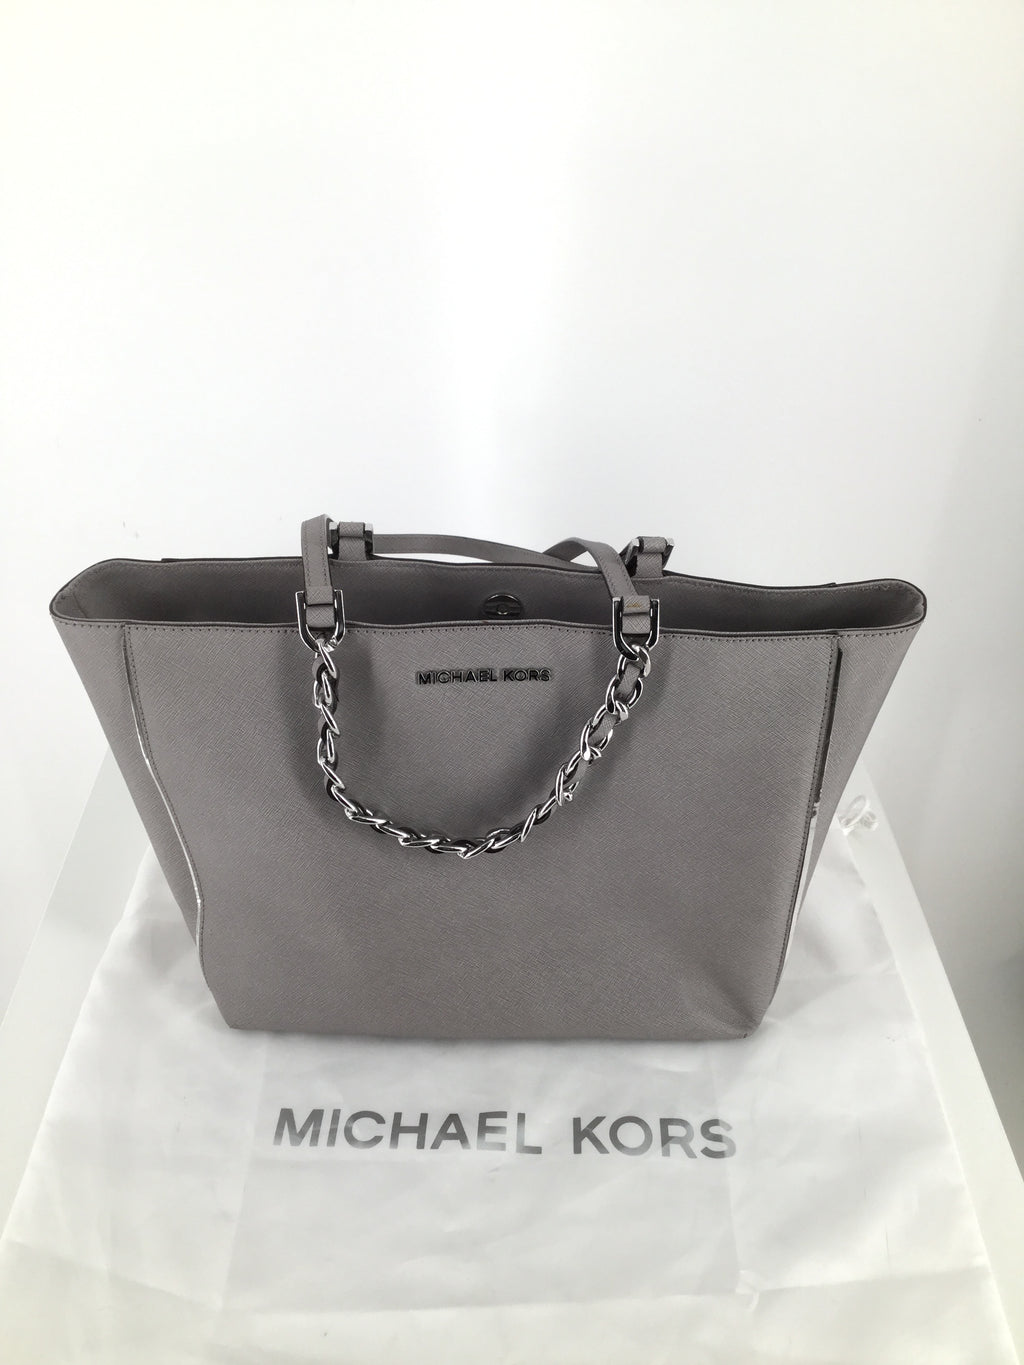 Michael Kors Handbag Designer Size:medium